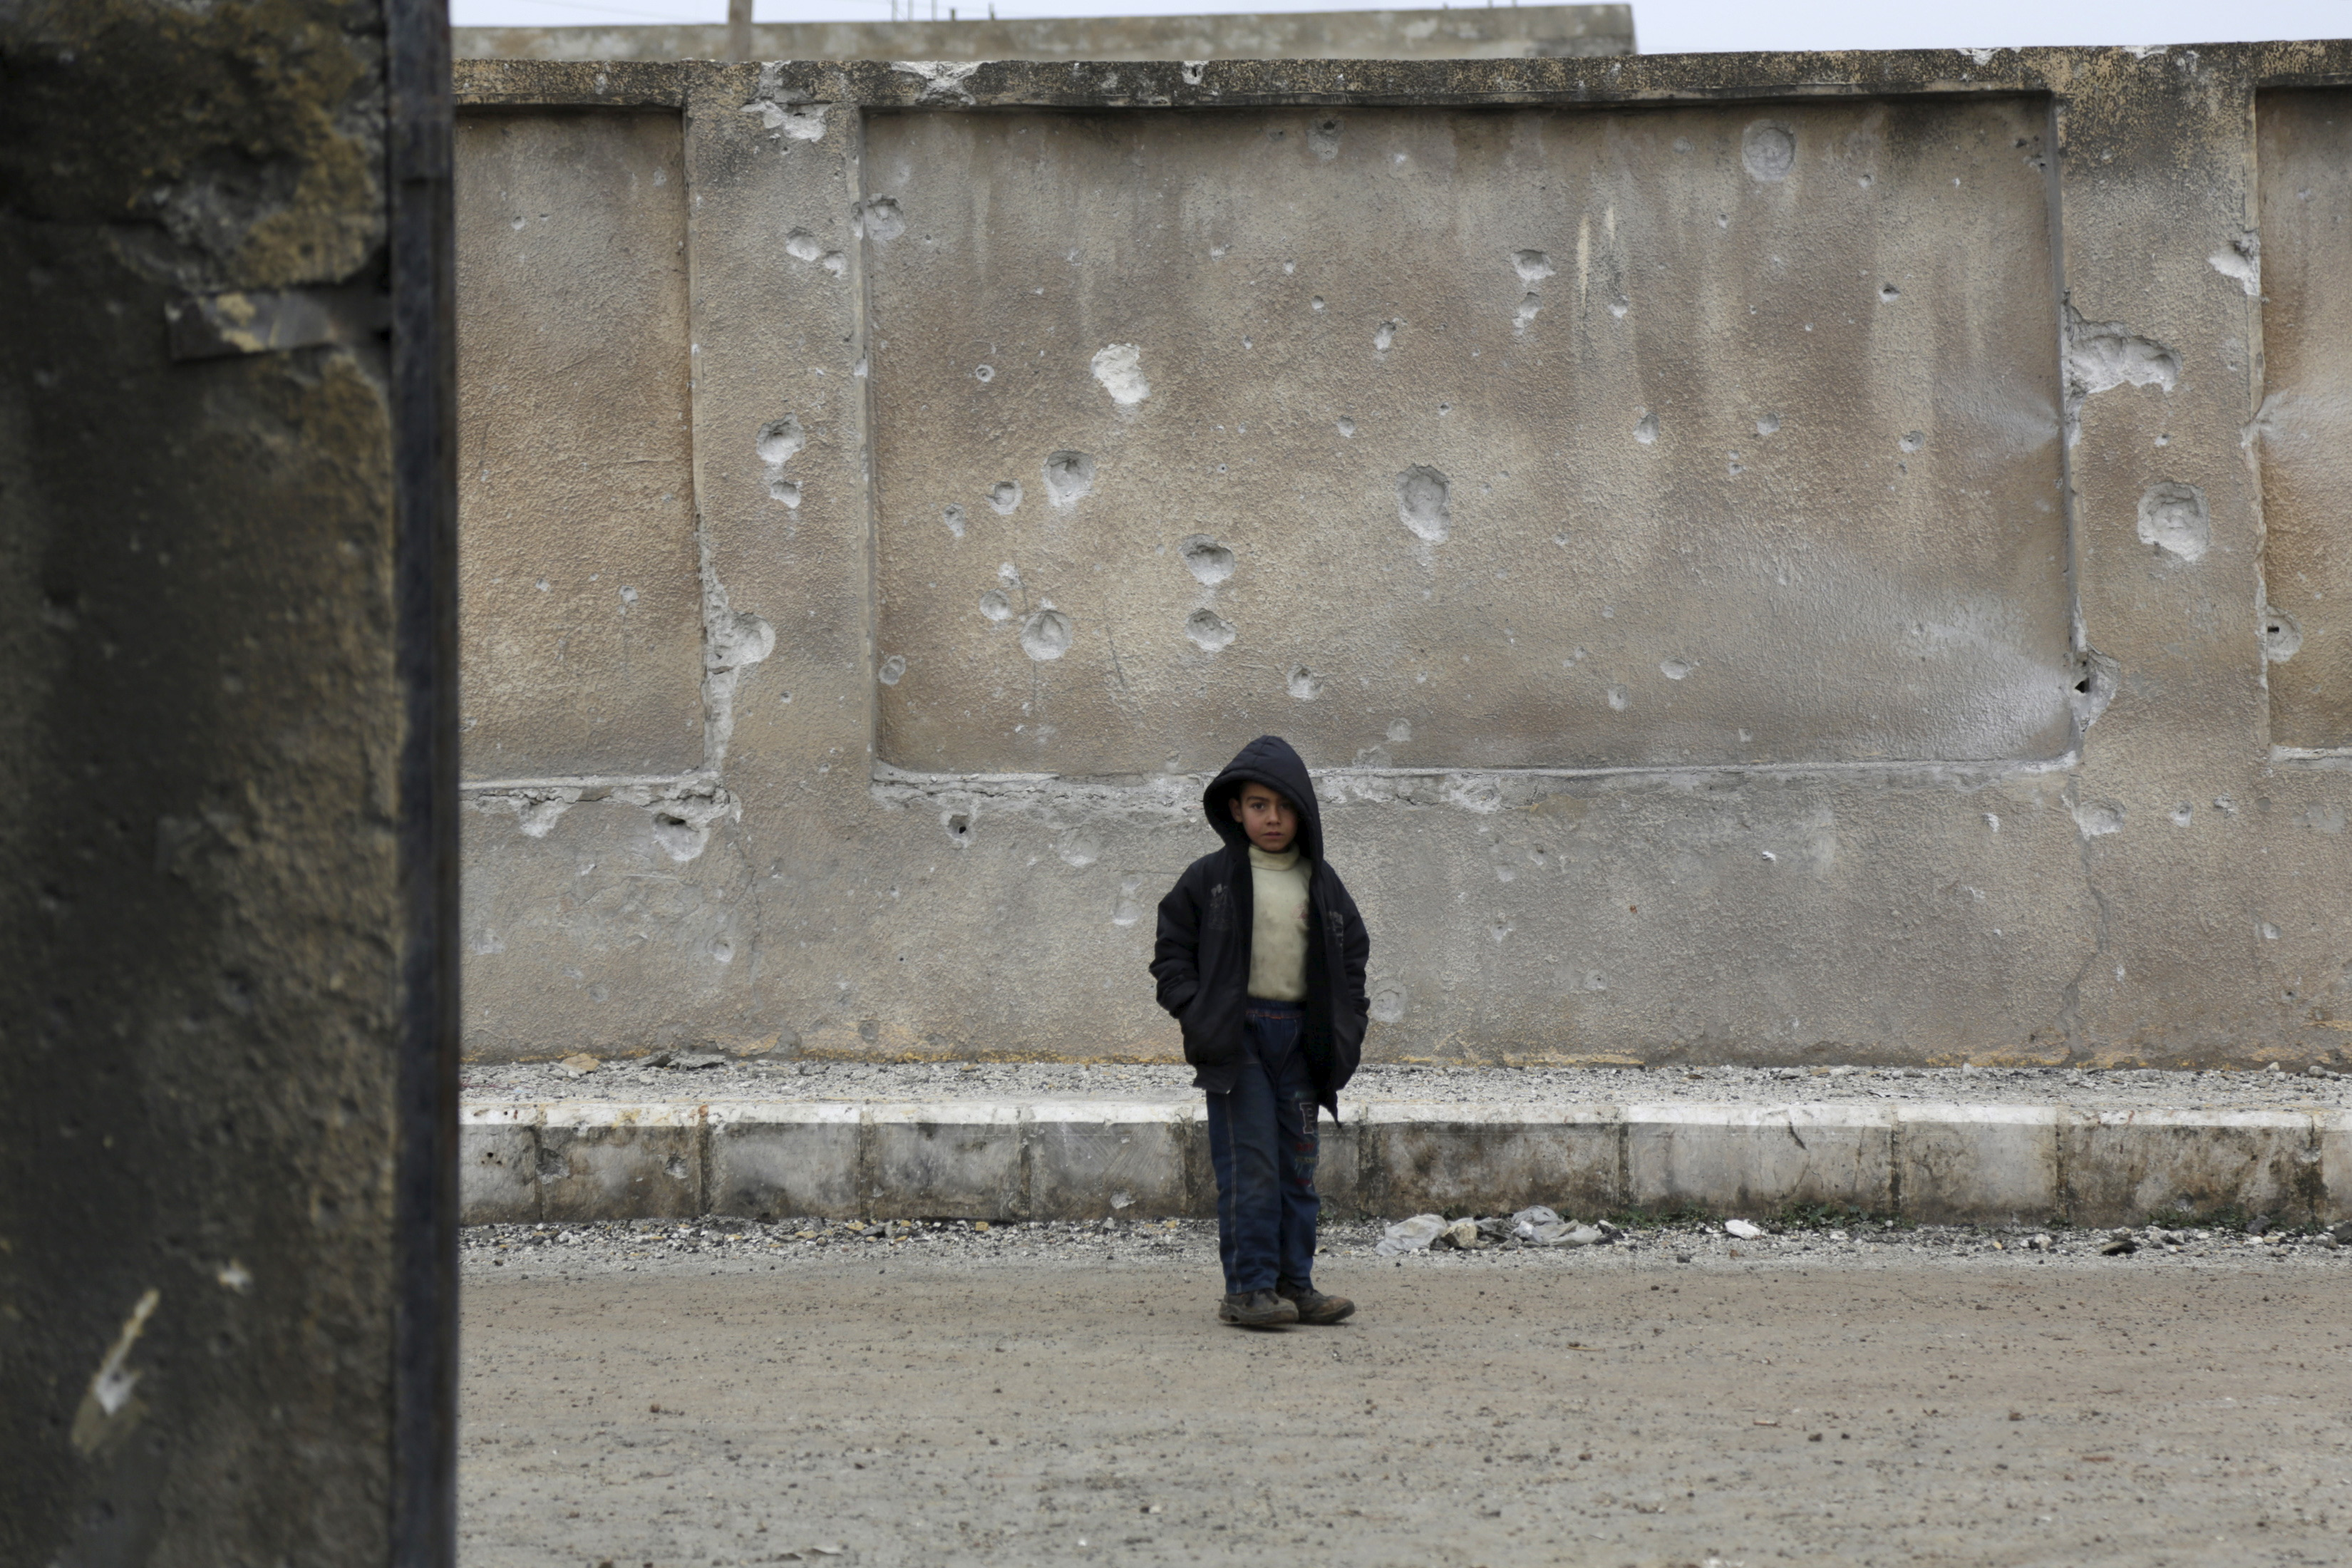 A boy stands near a wall of his school riddled with holes, due to what activists said was an air strike carried out yesterday by the Russian air force in Injara town, Aleppo countryside, Syria January 12, 2016. Bombs dropped by suspected Russian warplanes killed at least 12 Syrian schoolchildren on Monday when they hit a classroom in a rebel-held town in Aleppo province, the Syrian Observatory for Human Rights reported. REUTERS/Khalil Ashawi - GF20000092775